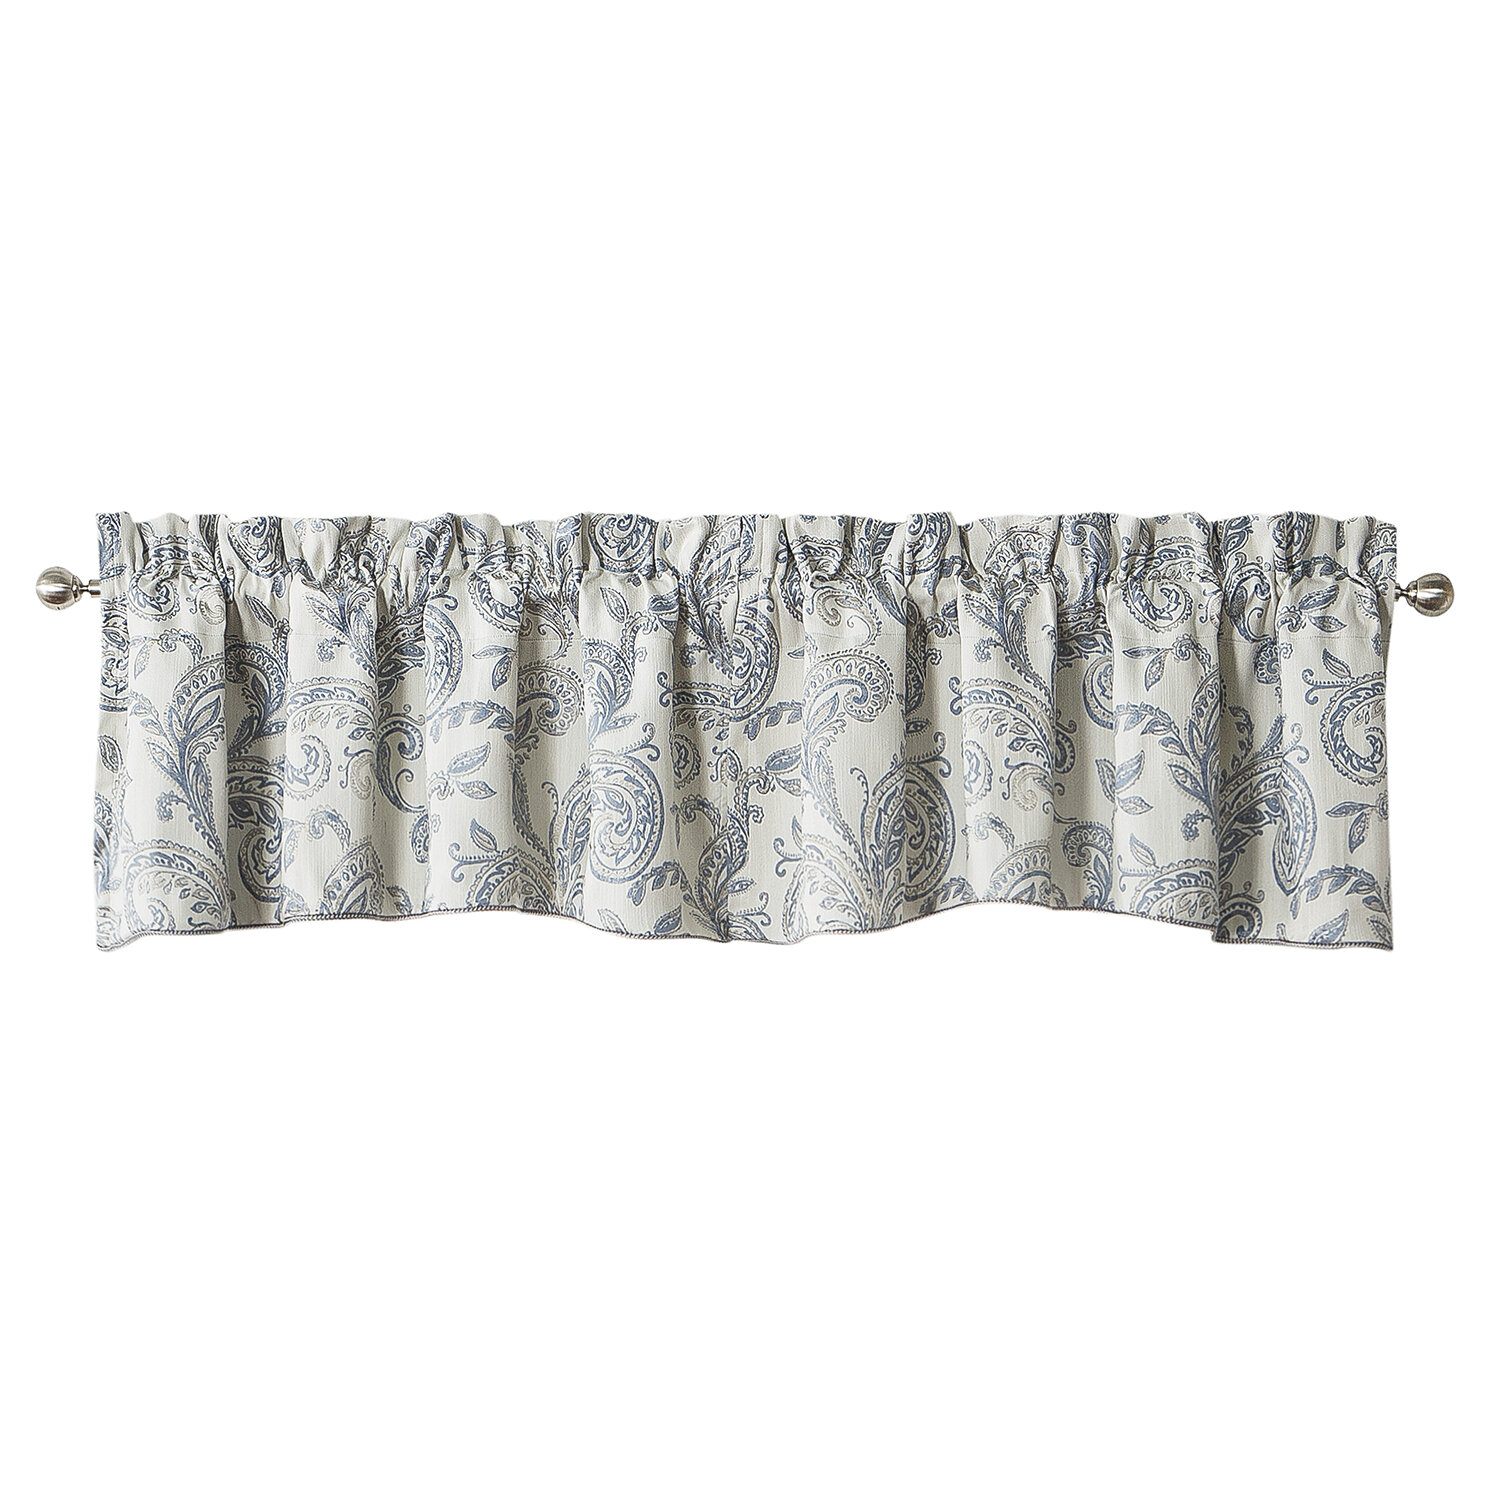 Thermal Insulated Turquoise Blue Birds Country Style Pattern Privacy Protection Kitchen Valances For Windows Room Darkening Curtain Valances For Bedroom 1 Panel 58 X 15 Inch Rod Pocket Valences